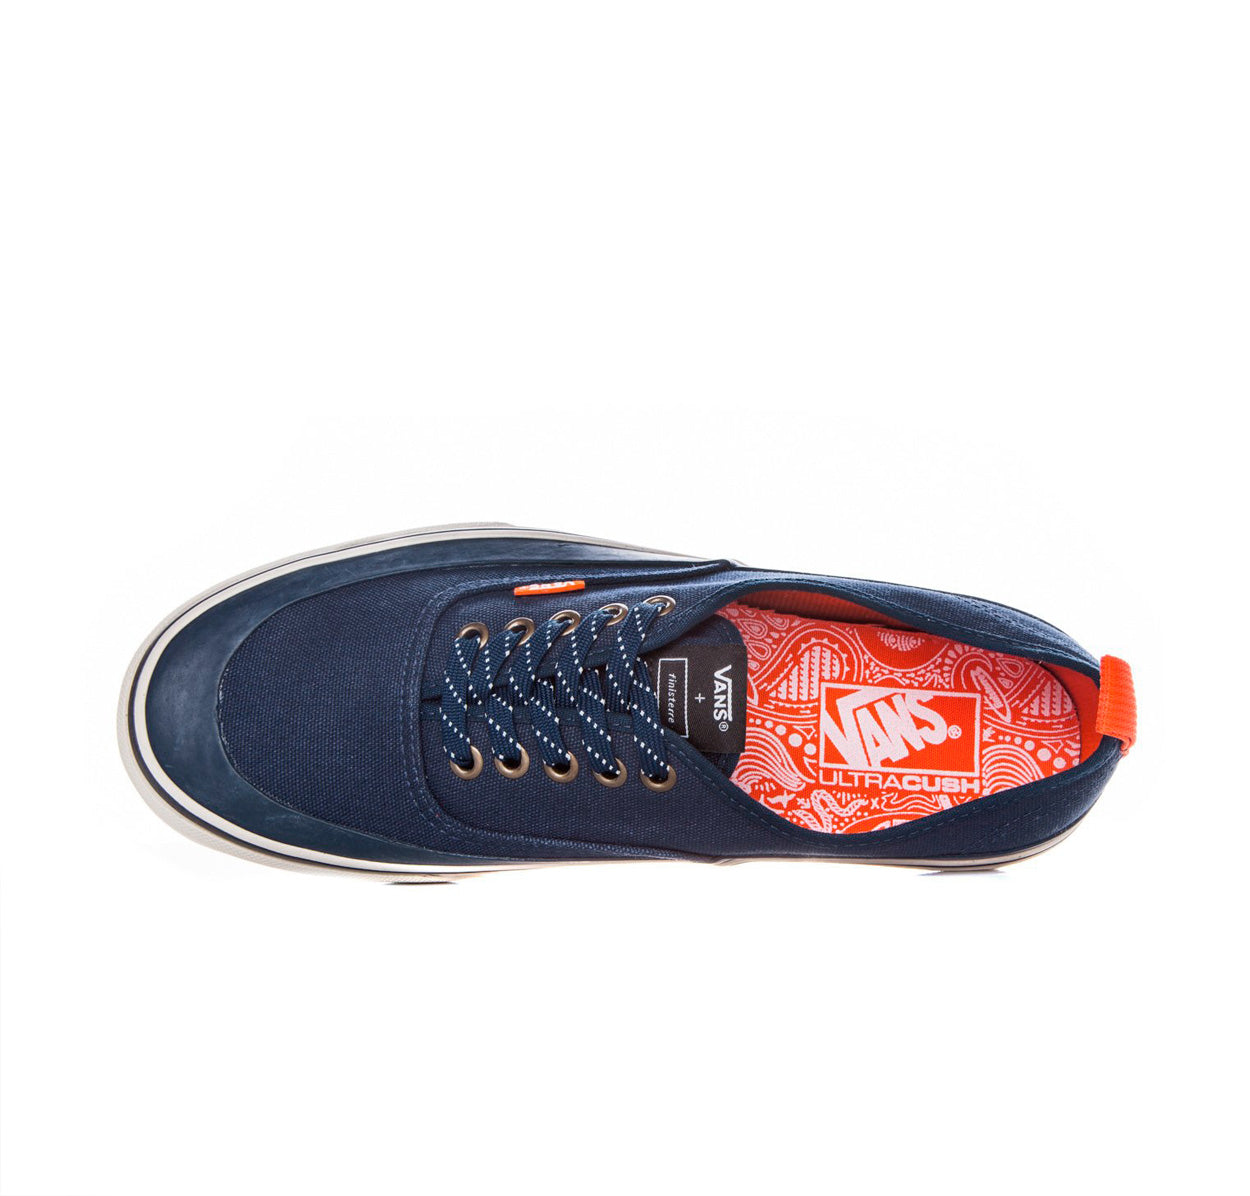 Finisterre x Vans Authentic MTE - Navy Footwear - CARTOCON